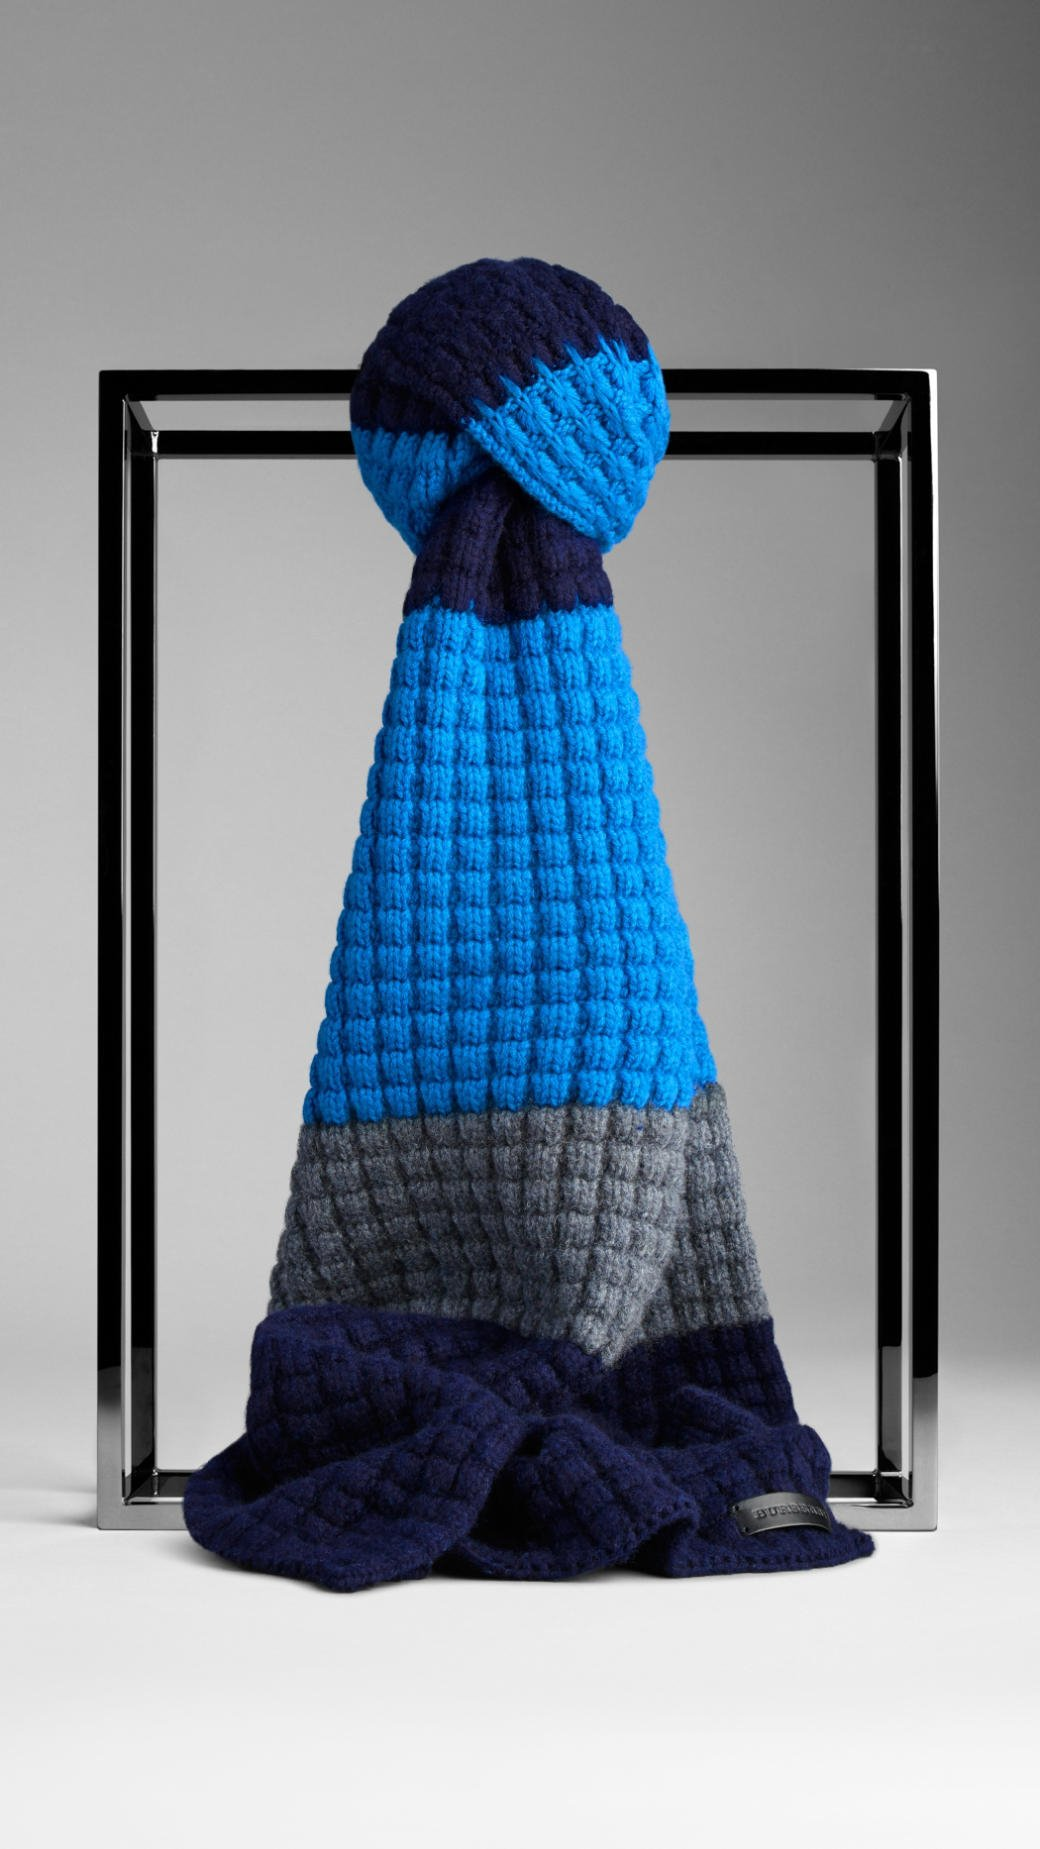 Knitting Pattern Burberry Scarf : Burberry Waffle Knit Wool Cashmere Scarf in Blue for Men (cerulean blue/navy)...